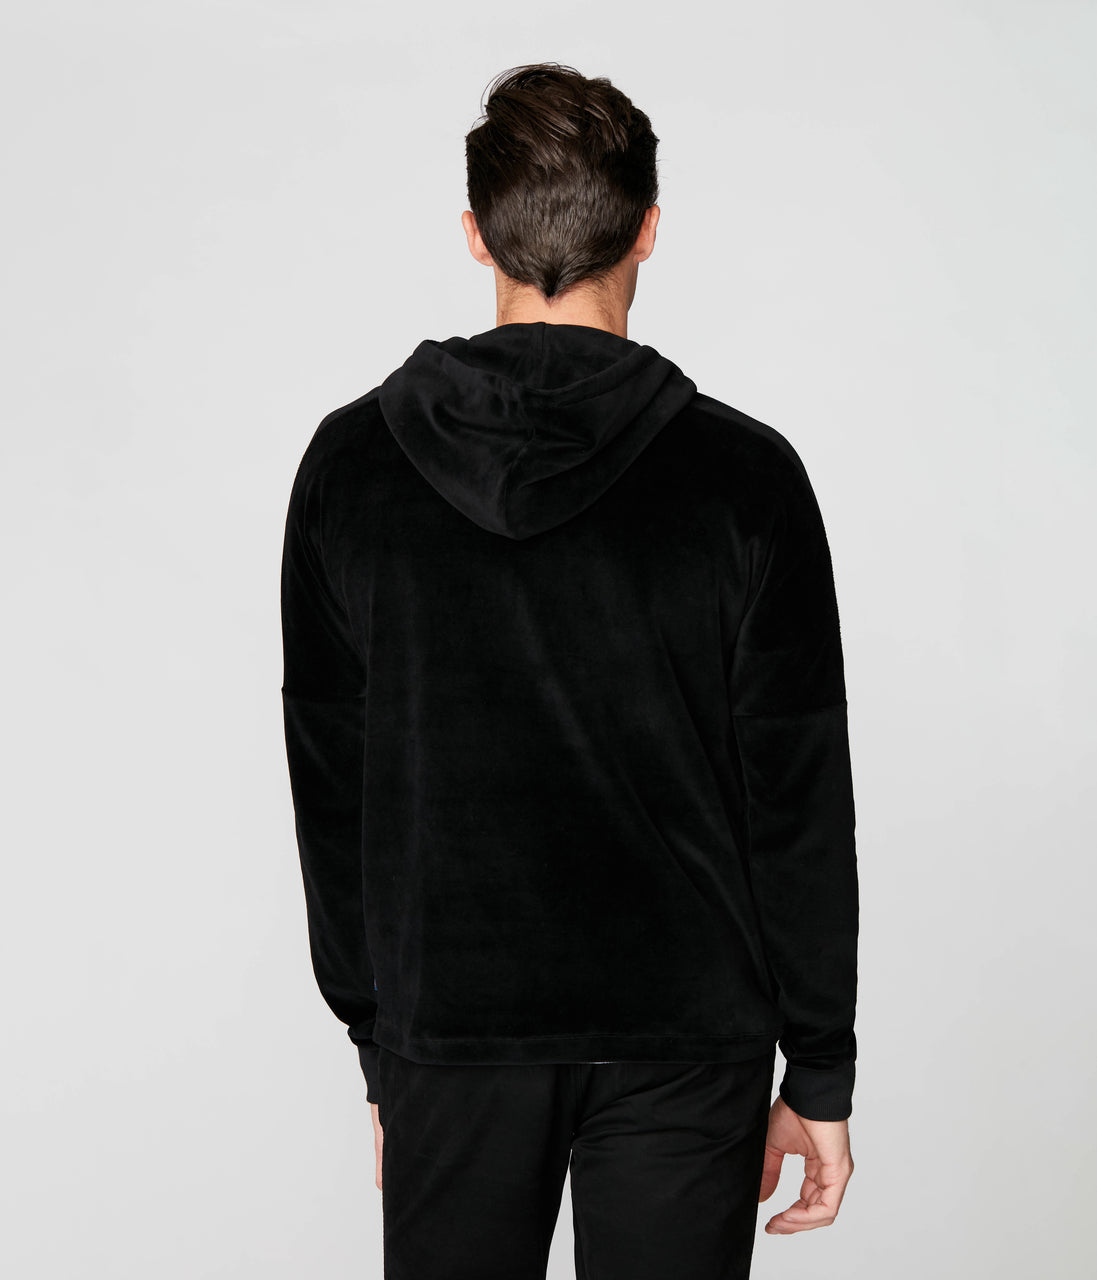 Japan Hoodie in Velour Single Flex - Black - Good Man Brand - Japan Hoodie in Velour Single Flex - Black